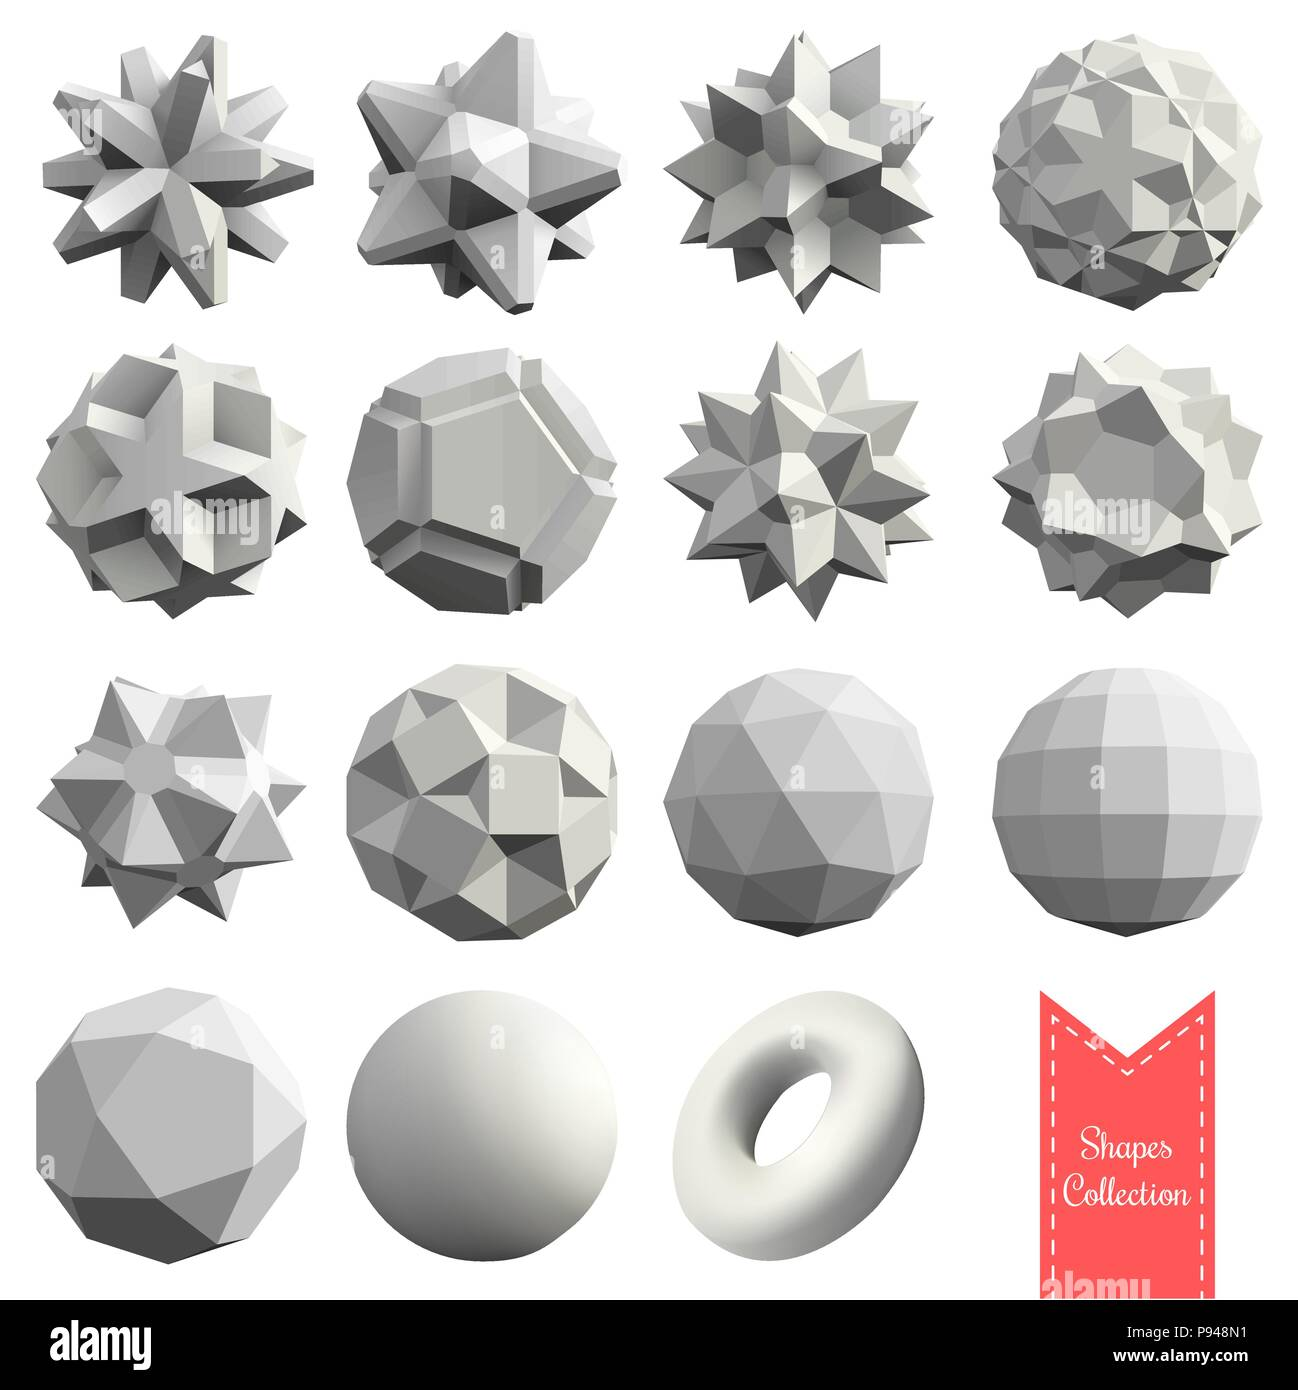 Collection of 15 3d geometric shapes Stock Vector Art & Illustration